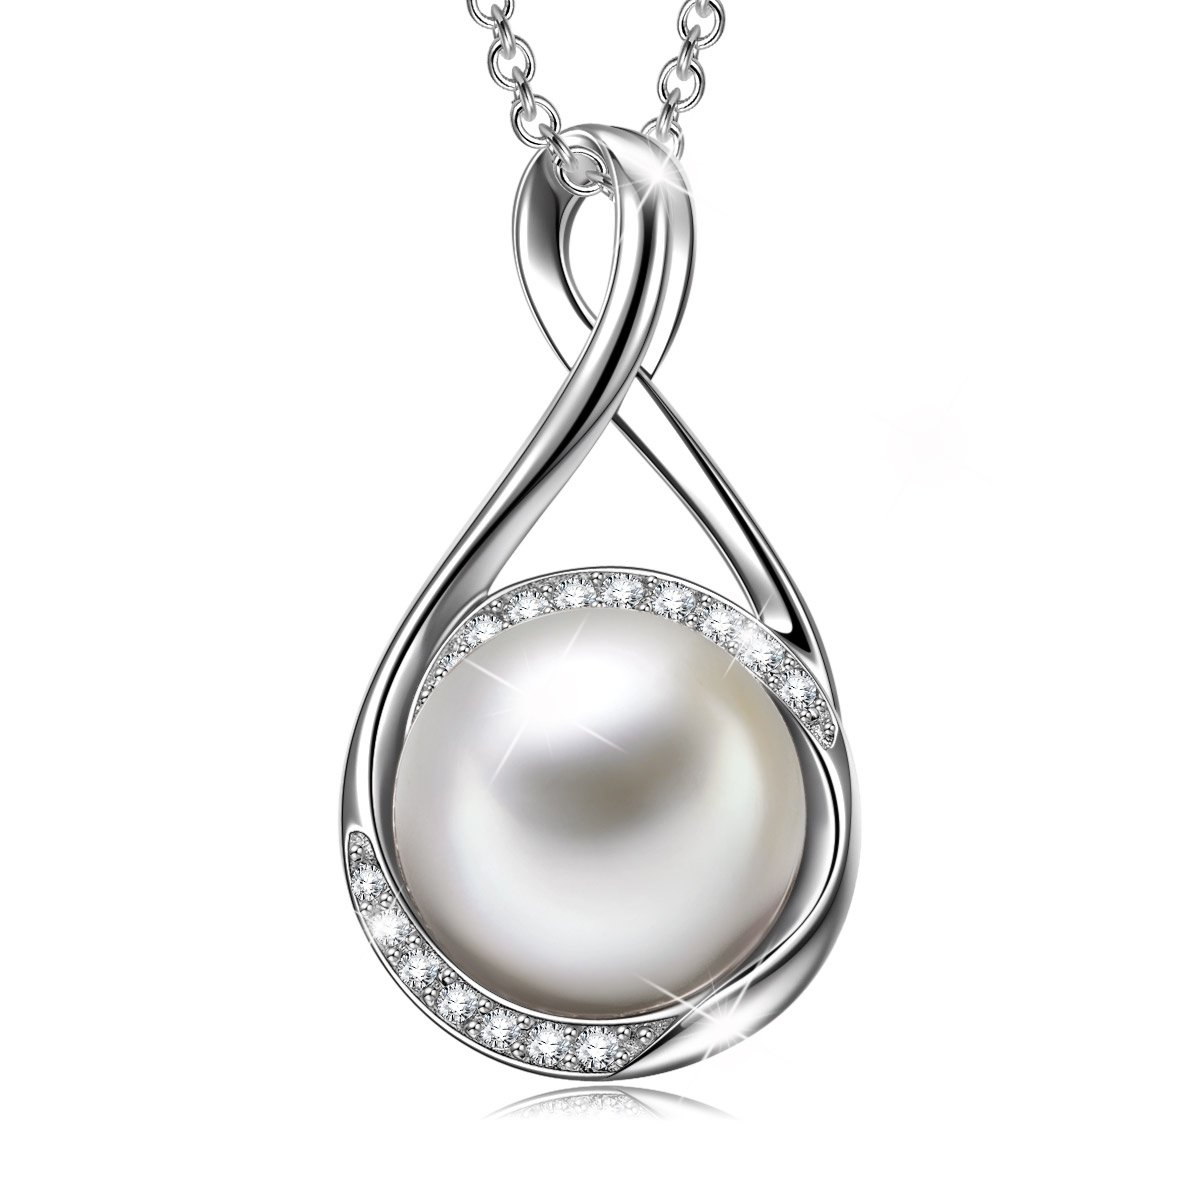 SIVERY 'Amazing Love' 925 Sterling Silver Necklace Women Crystal Pearl from Swarovski, Fine Jewelry Women Birthday Gifts Her